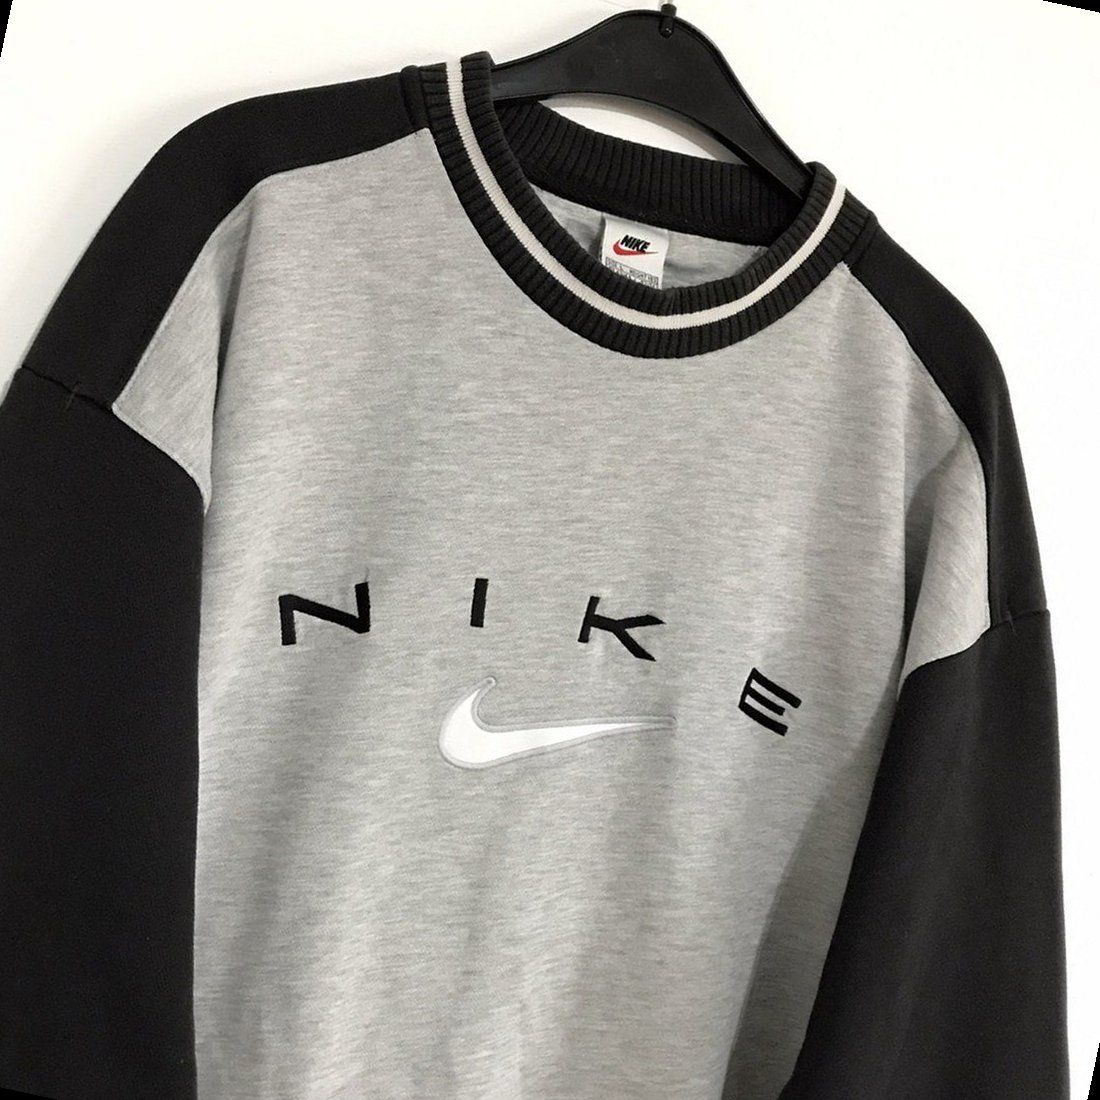 48 Day Outfit Sweatshirt Outfit 2020 In 2021 Vintage Nike Sweatshirt Vintage Hoodies Retro Outfits [ 1100 x 1100 Pixel ]